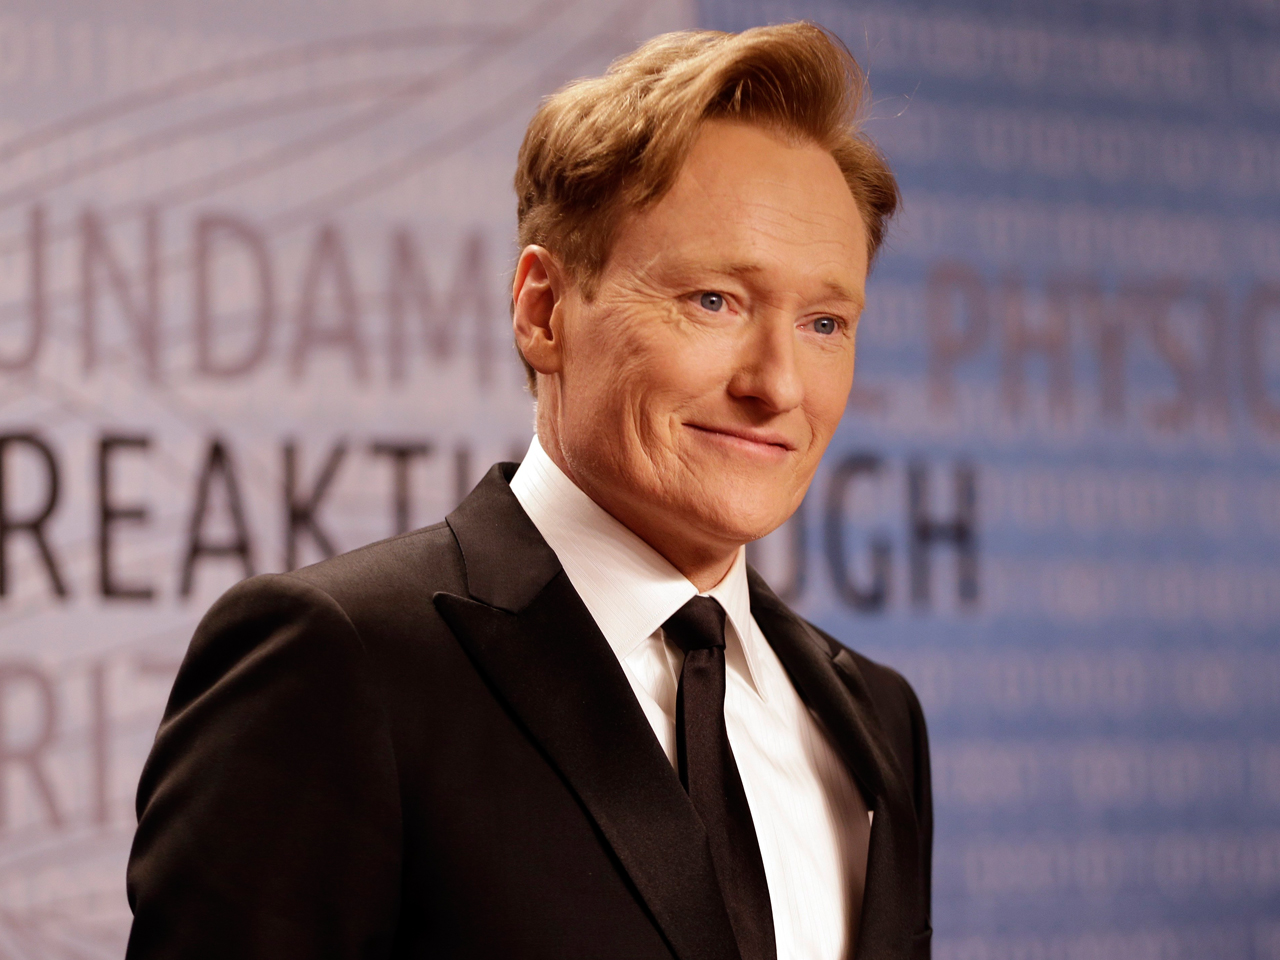 Conan O'brien is among Remarkable 10 Talk Show Hosts 2017